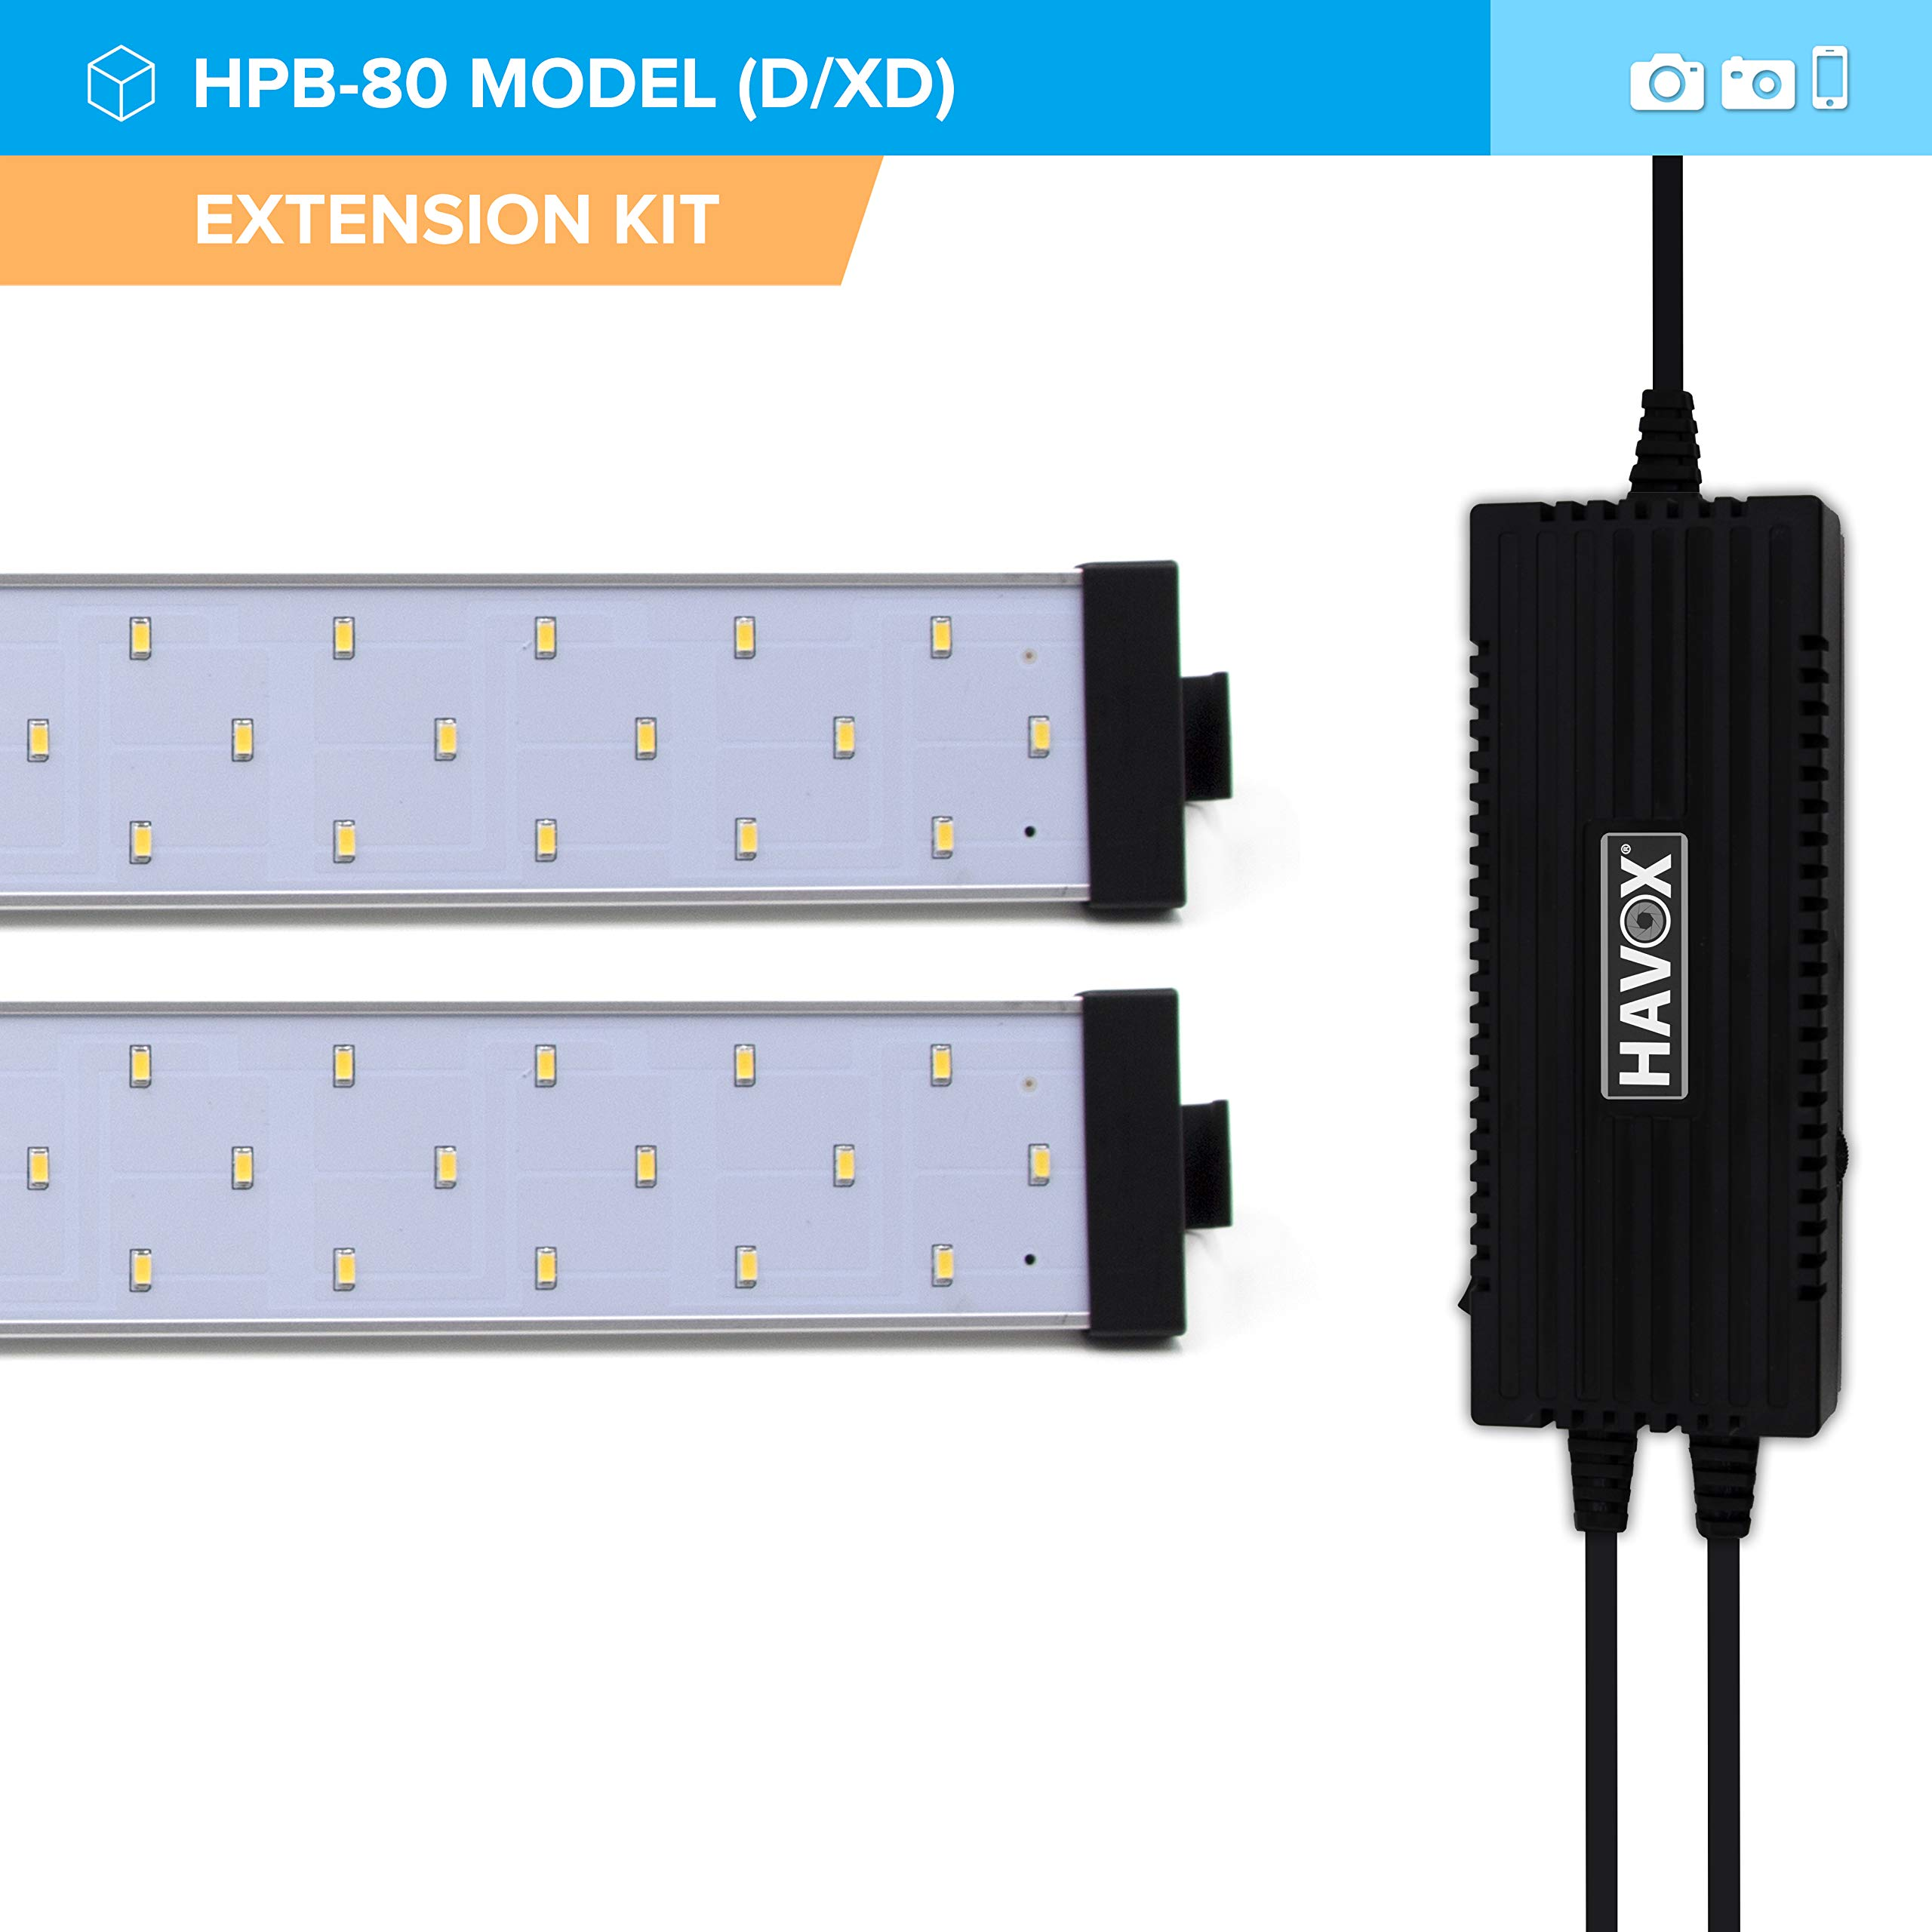 HAVOX - Extension kit for Photo Studio HPB-80D/XD - 2 LED Ramps with Power Supply - 5500k Daylight - 13,000 lumens - CRI 93 by HAVOX